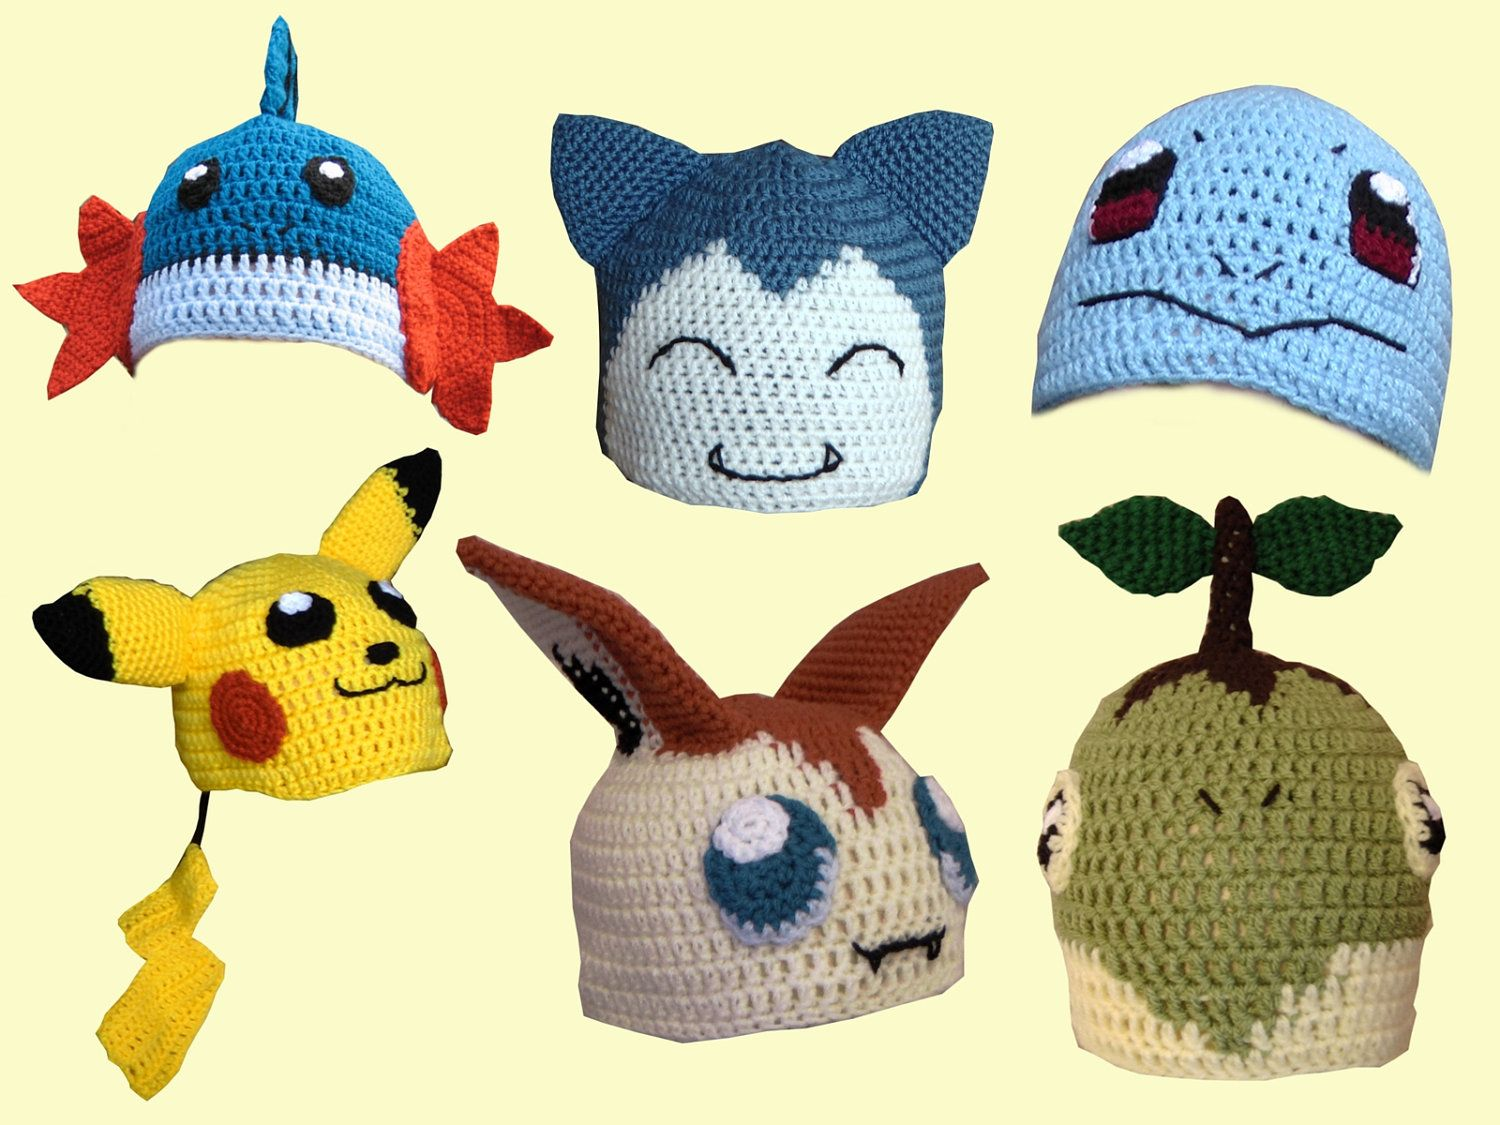 Crochet Pokemon Hats Yes Please Crochet Häkeln Mütze Häkeln